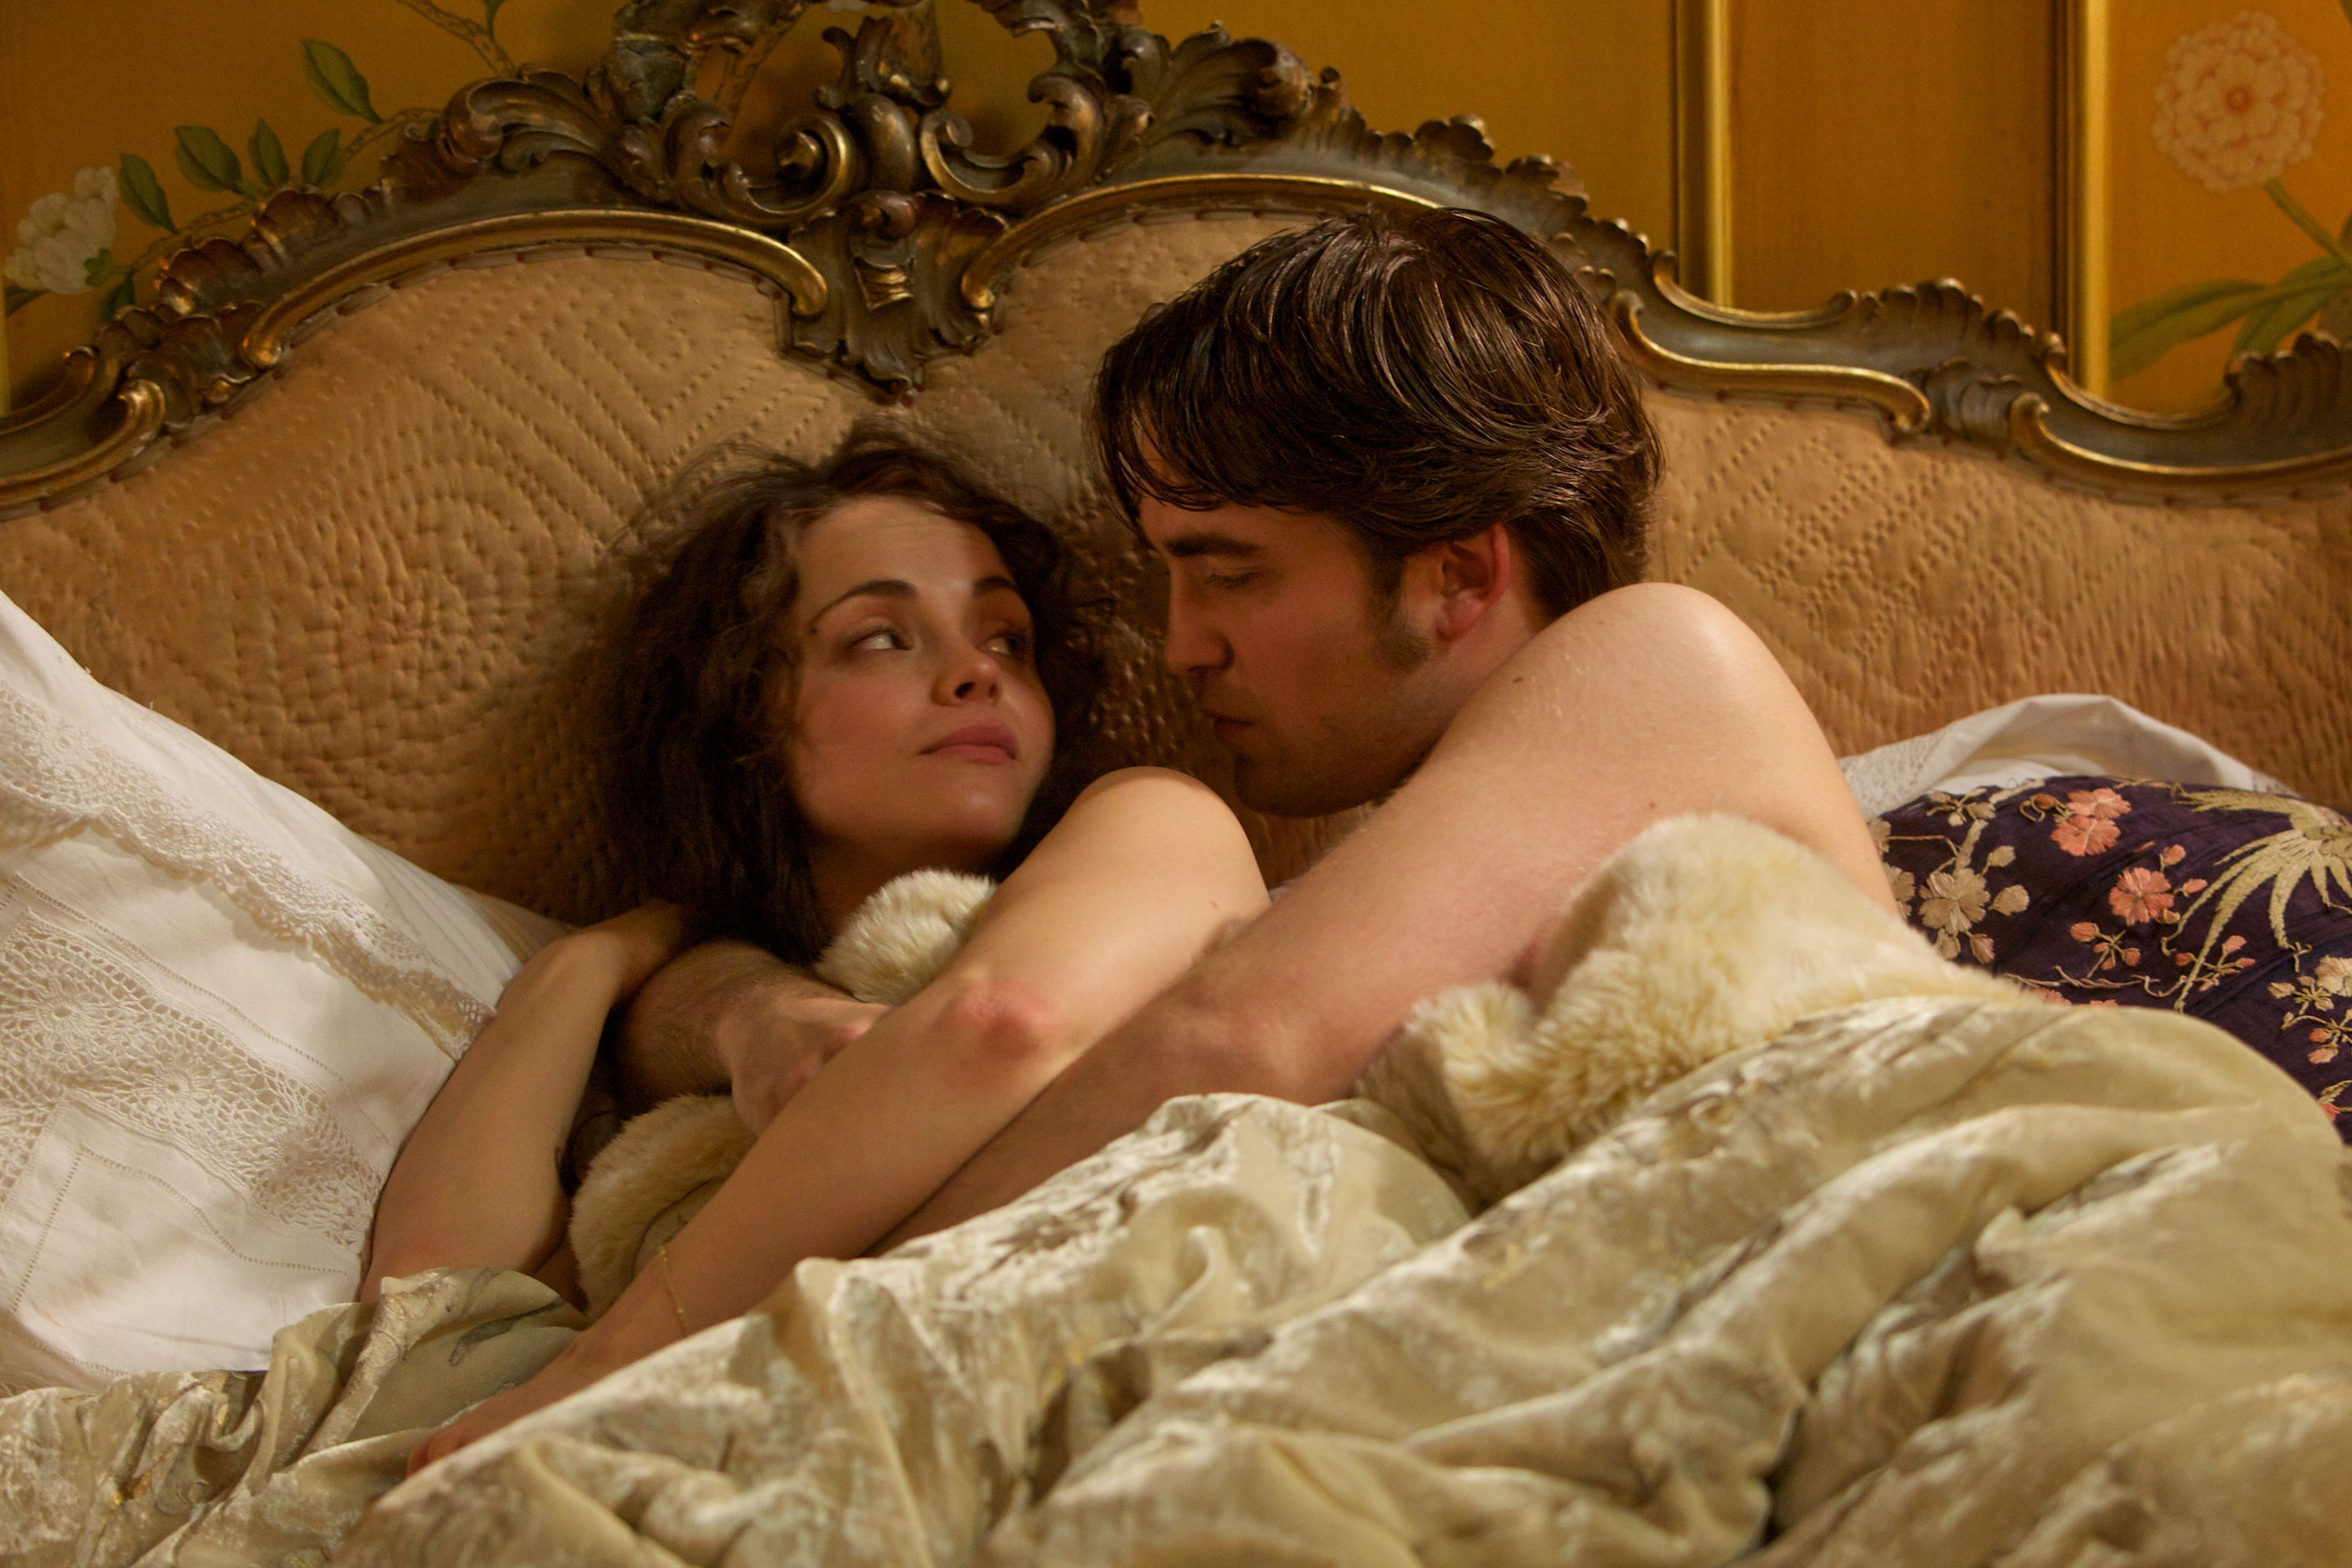 An image from Bel Ami